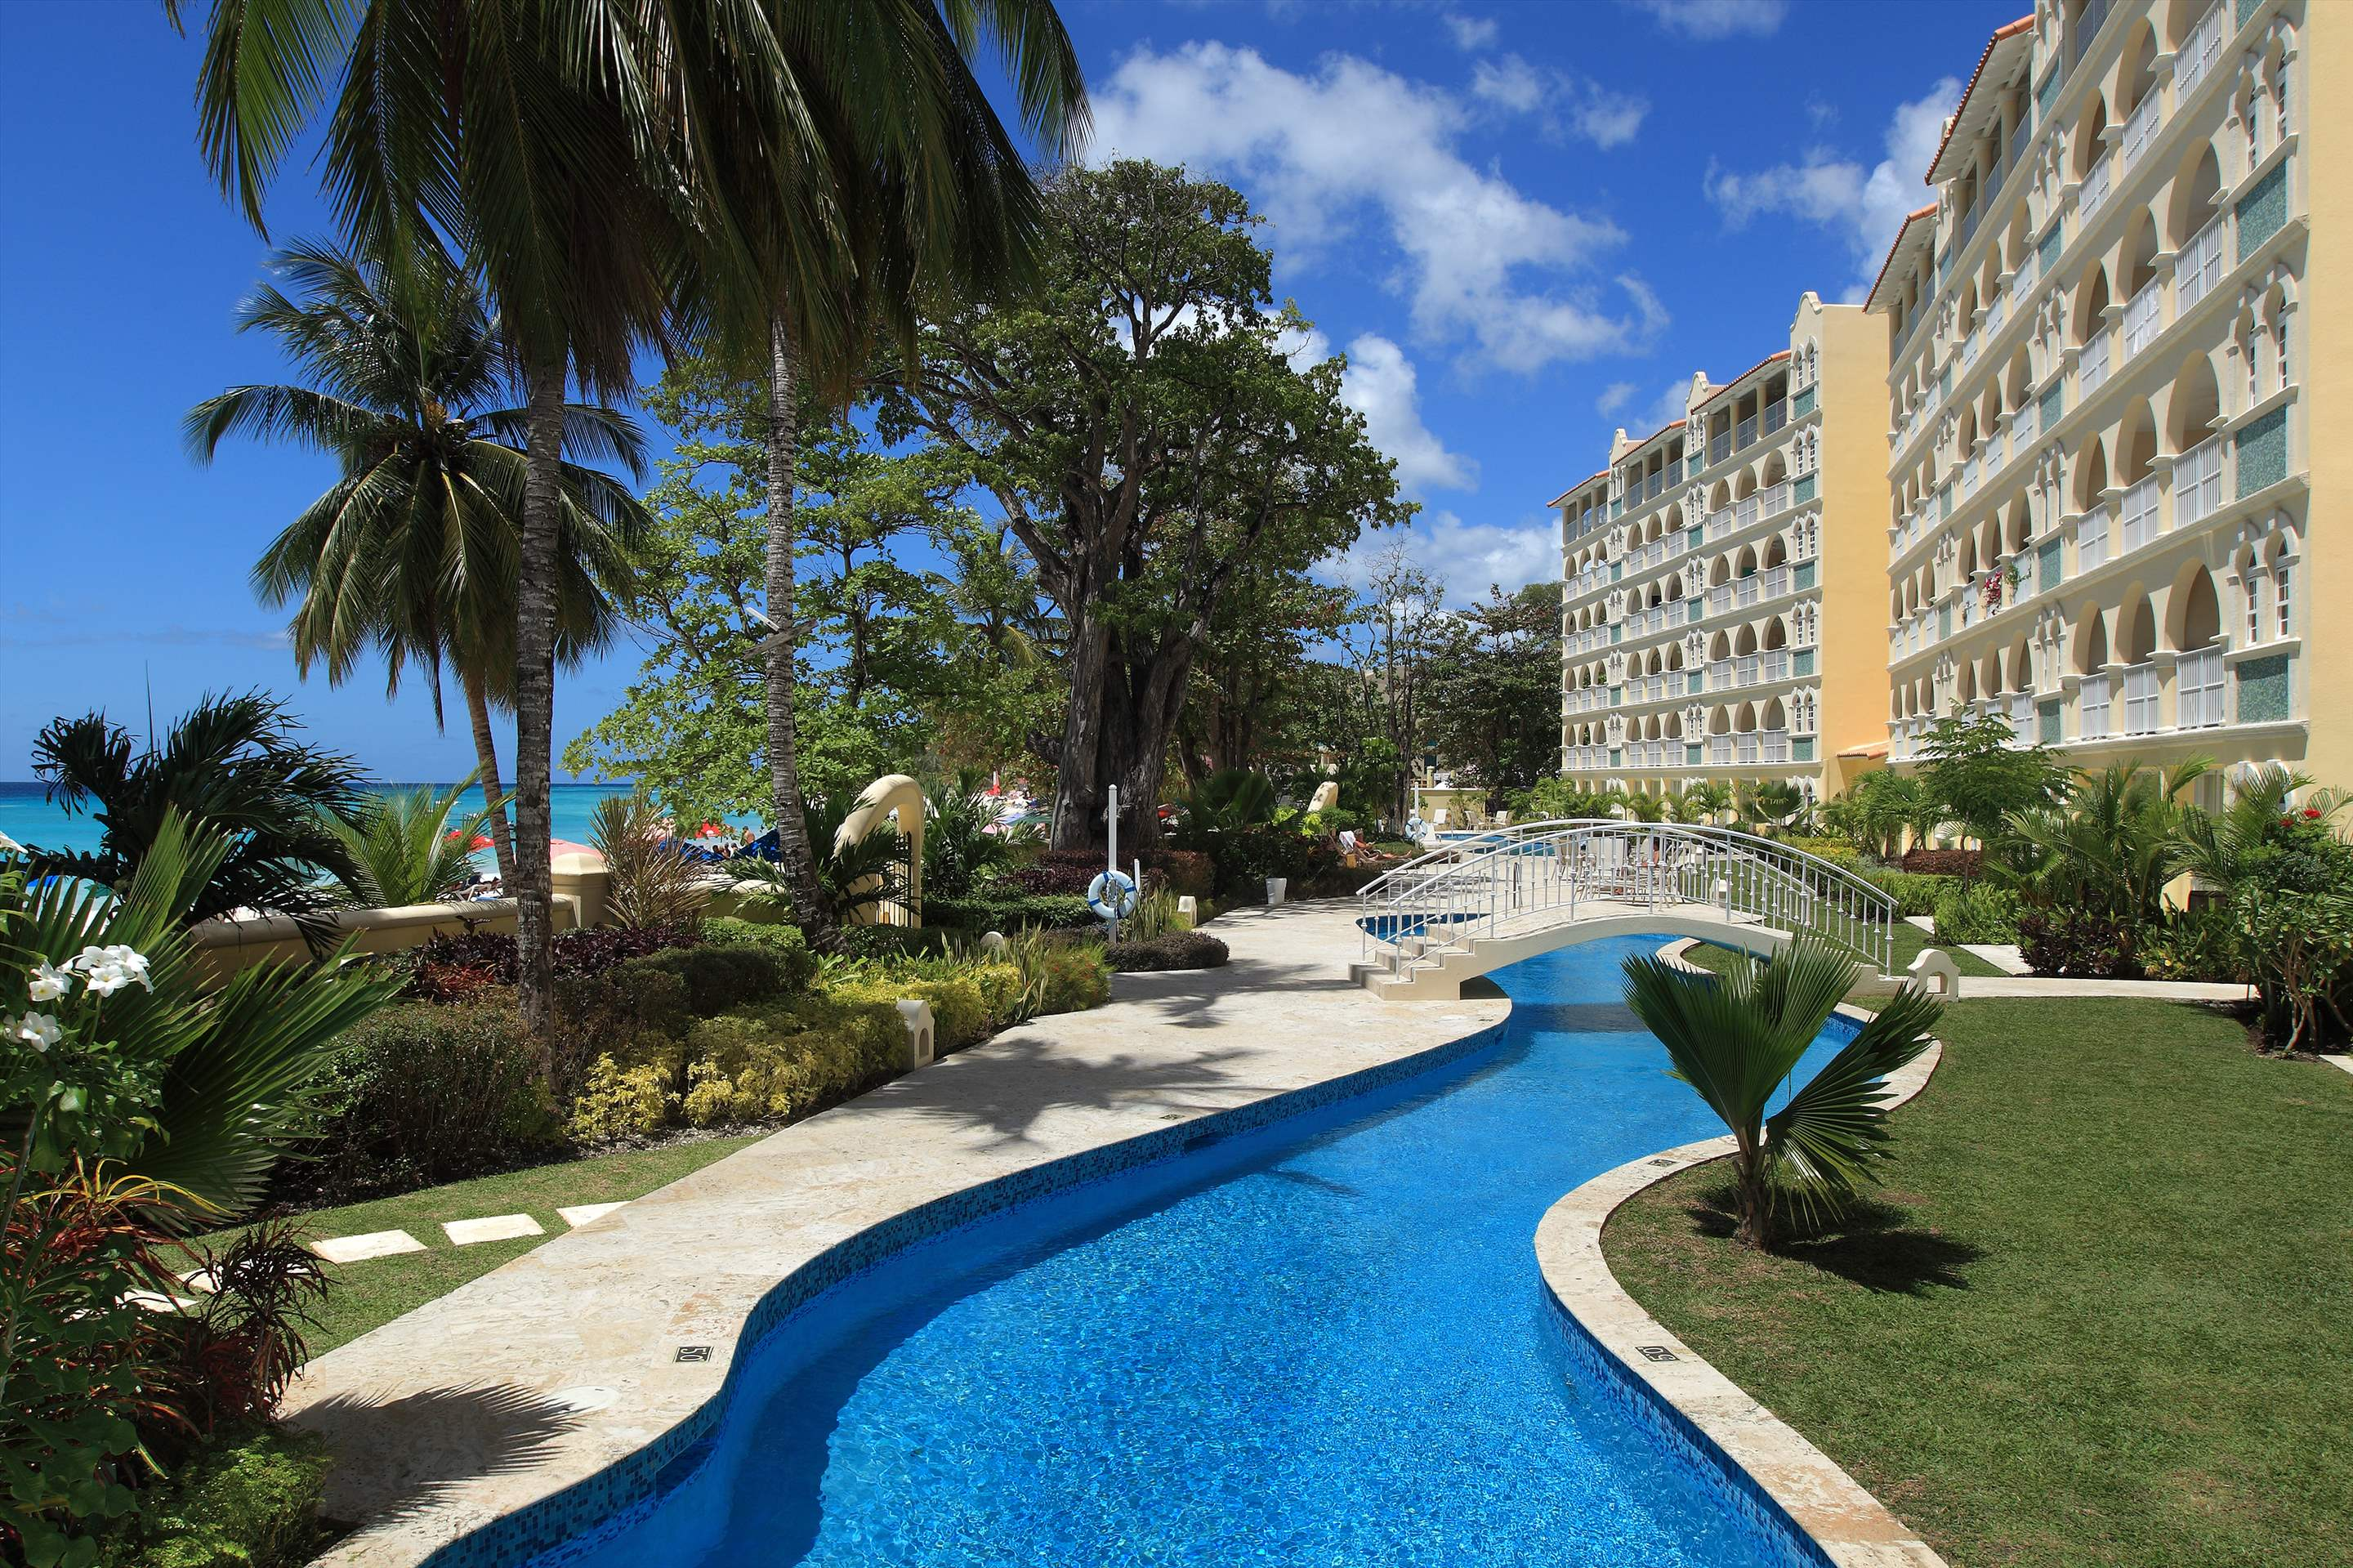 Sapphire Beach 309, 2 bedroom, 2 bedroom apartment in St. Lawrence Gap & South Coast, Barbados Photo #1